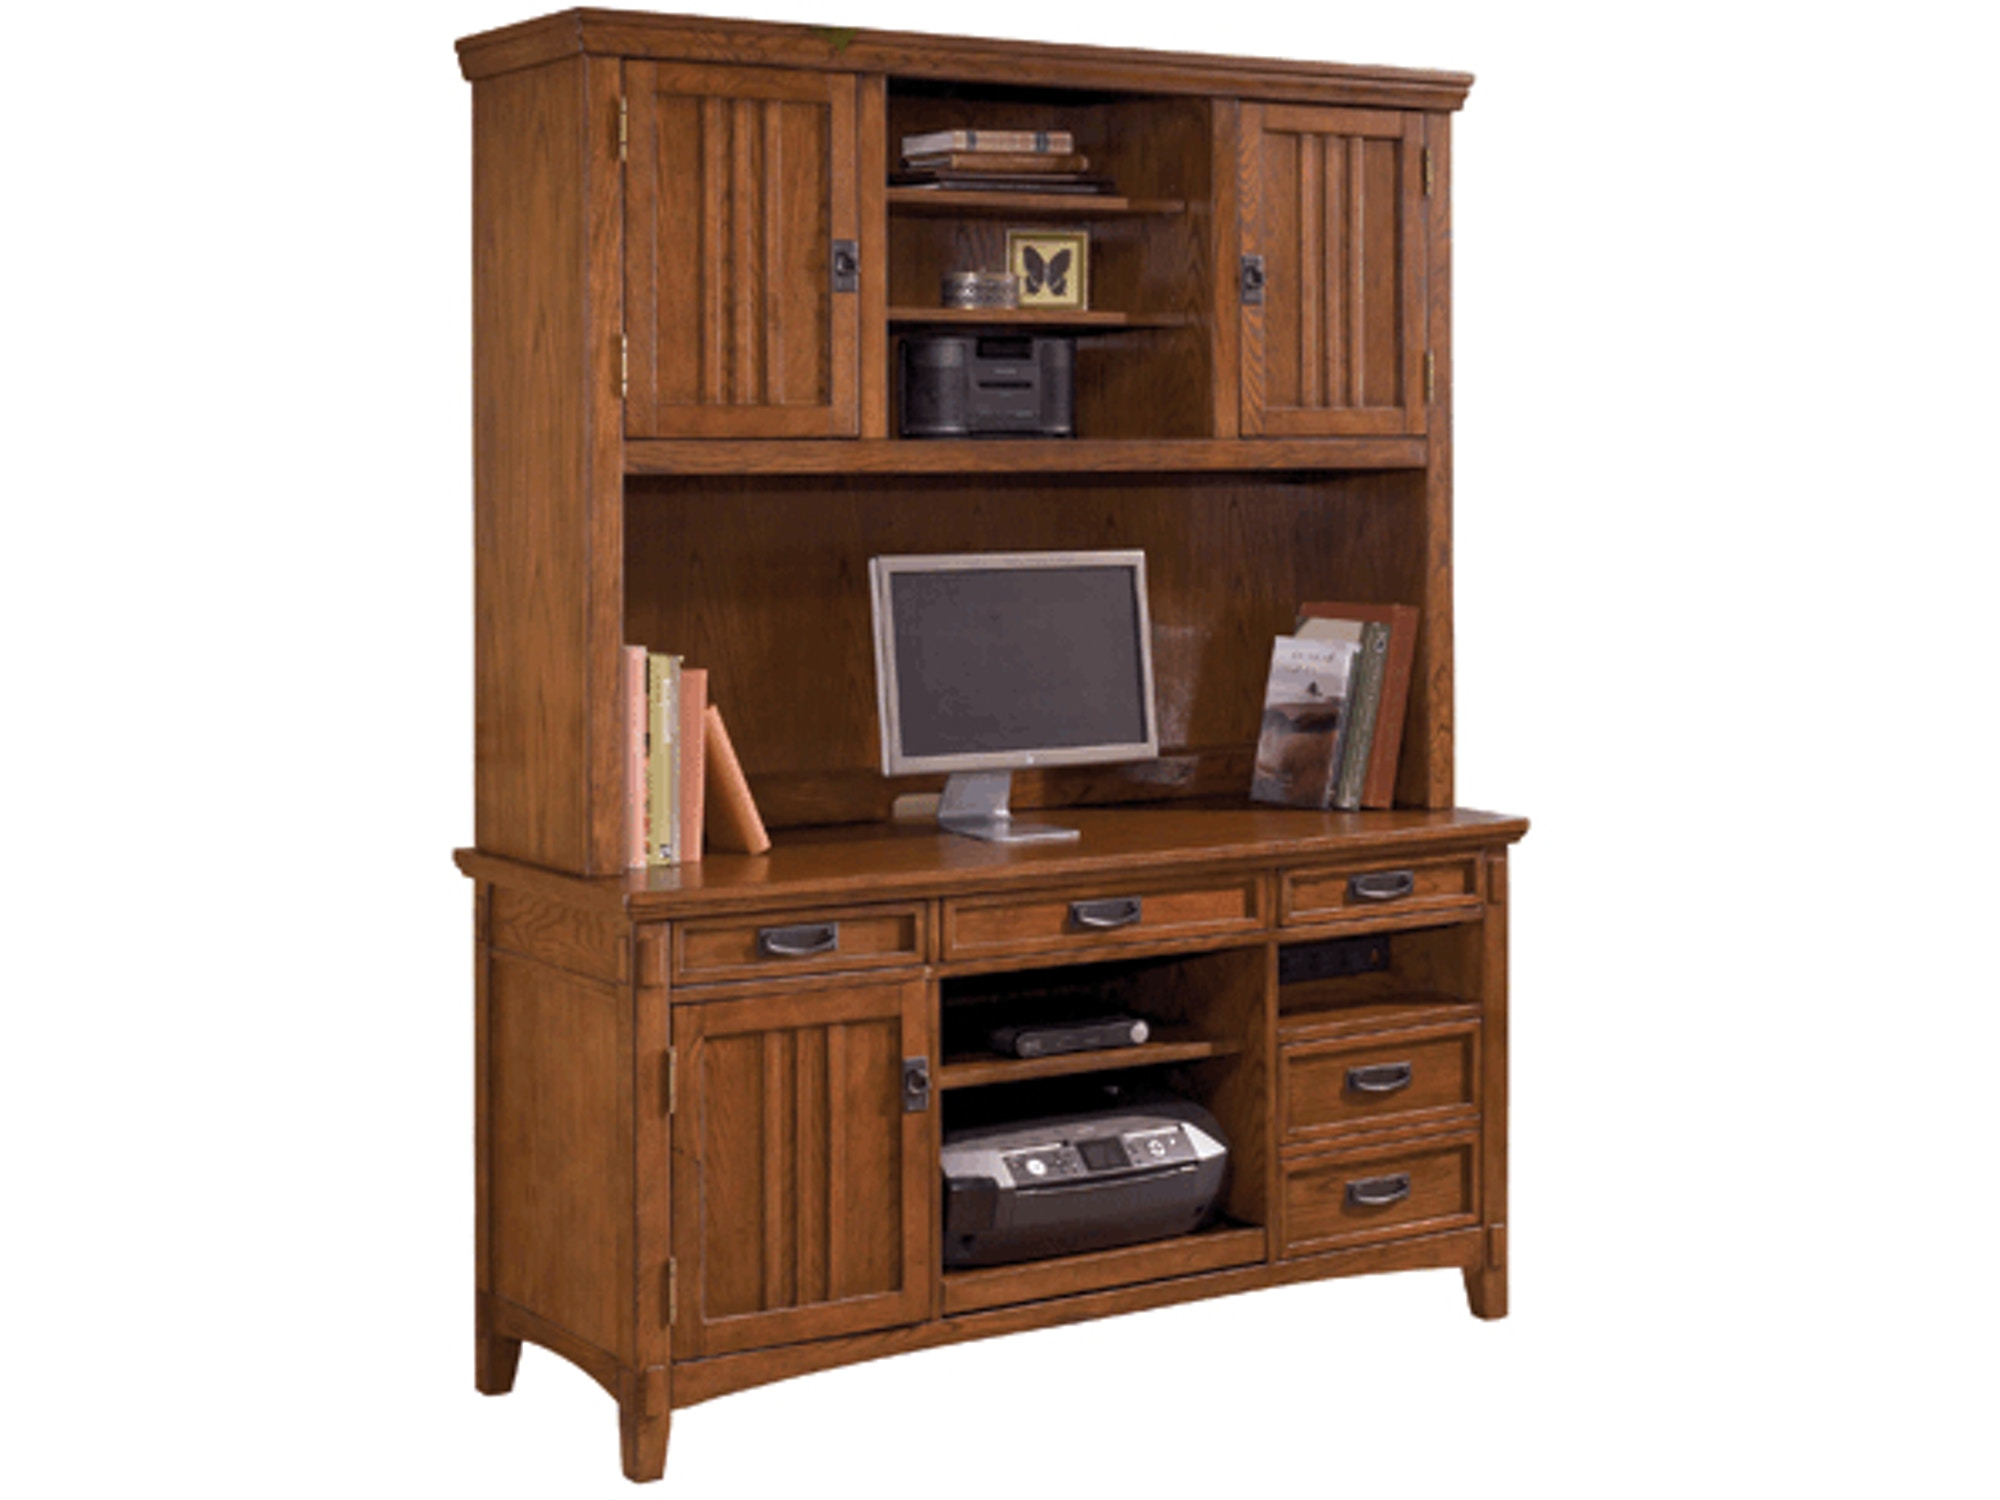 Cross Island Credenza and Hutch 129254